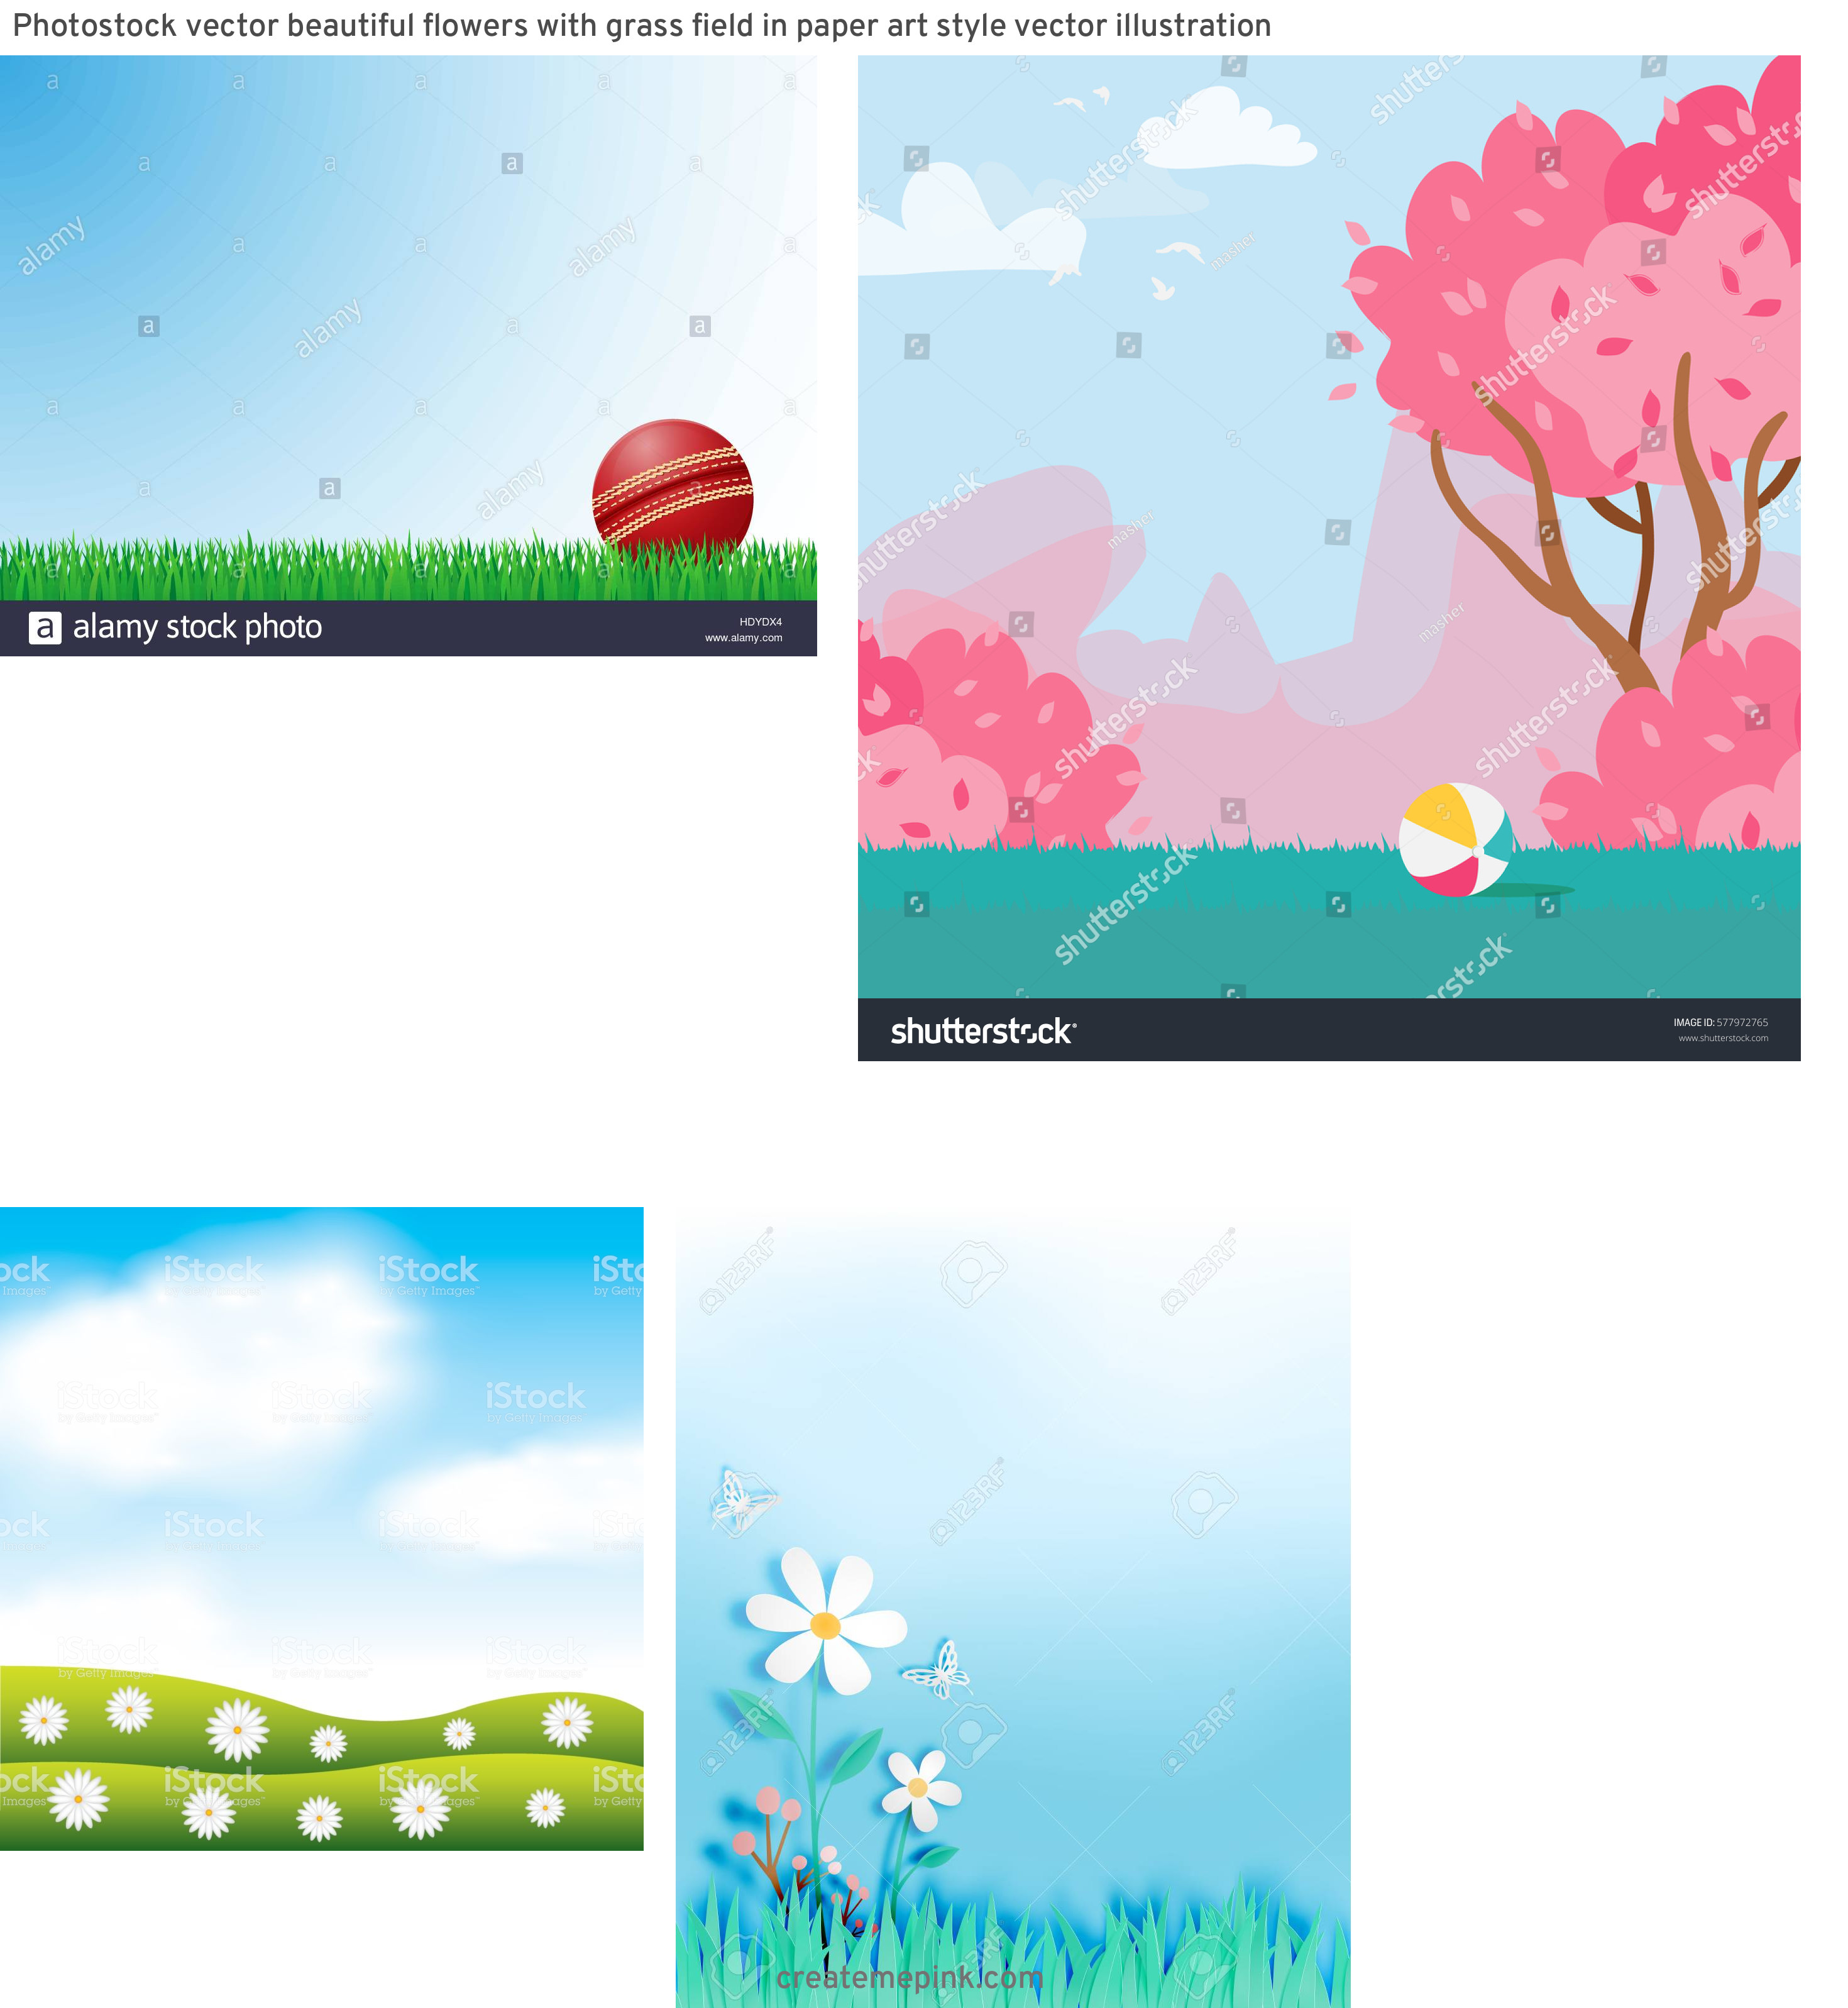 Vector Art Grass Field: Photostock Vector Beautiful Flowers With Grass Field In Paper Art Style Vector Illustration